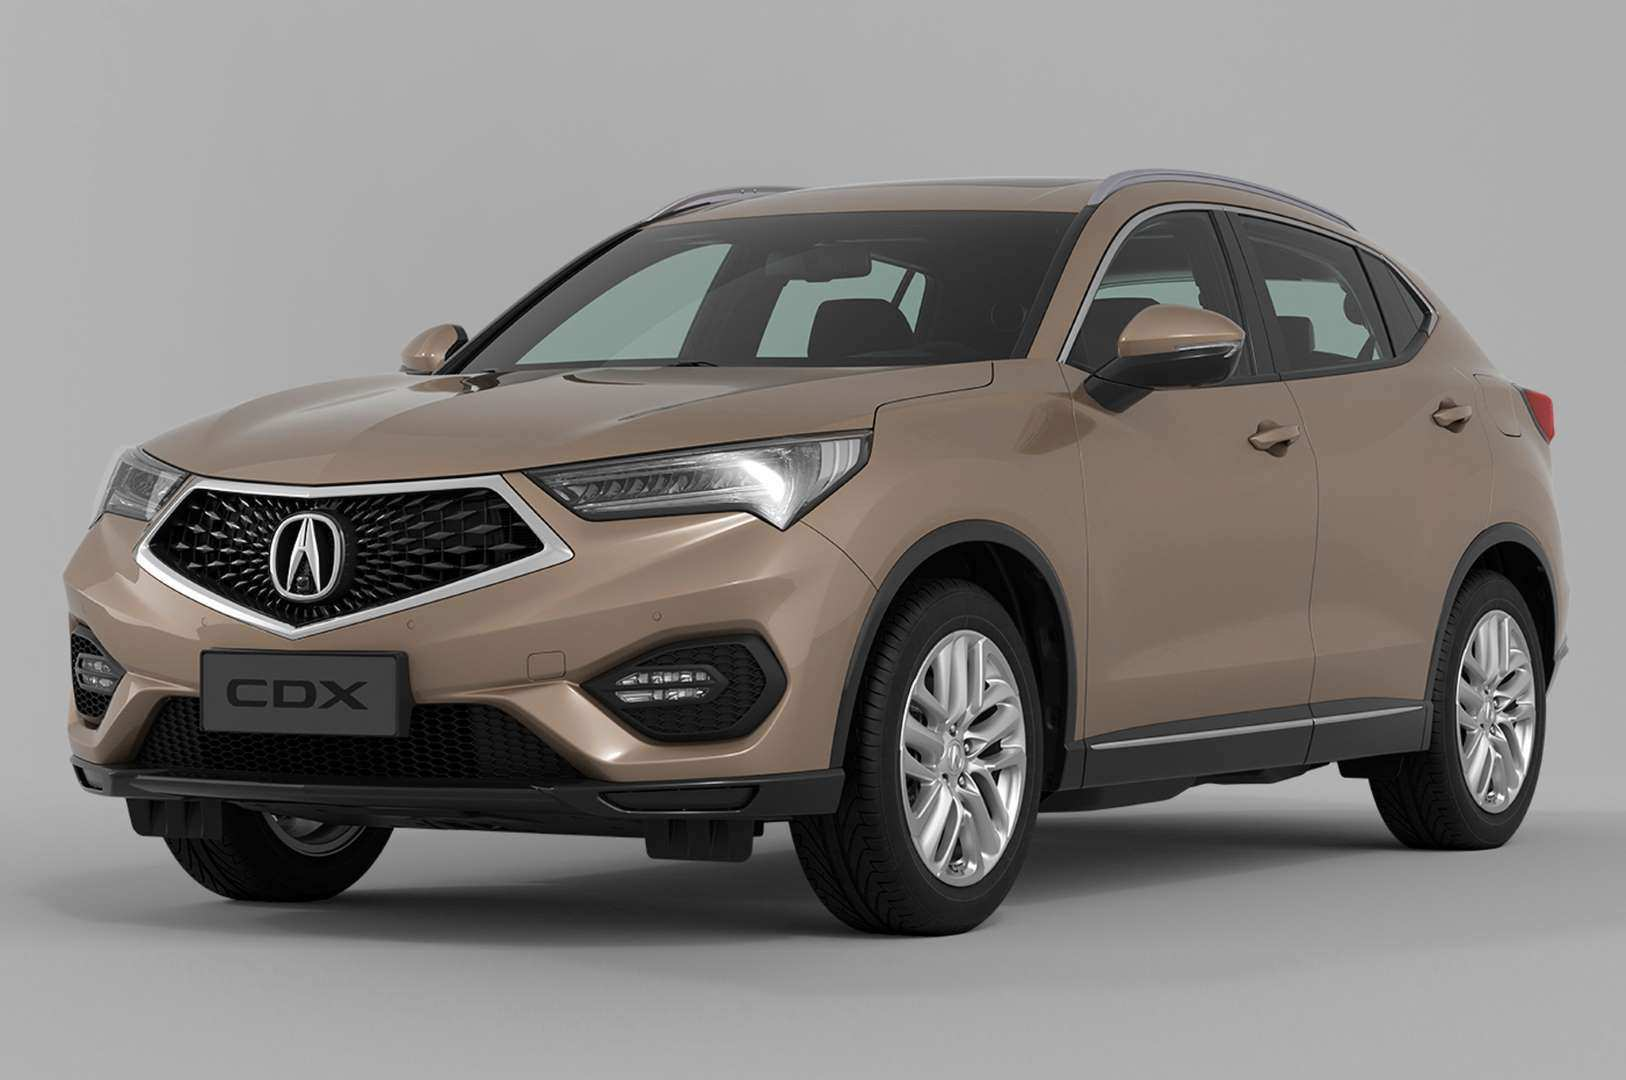 35 The Best Acura Mdx 2020 New Model Release Date and Concept